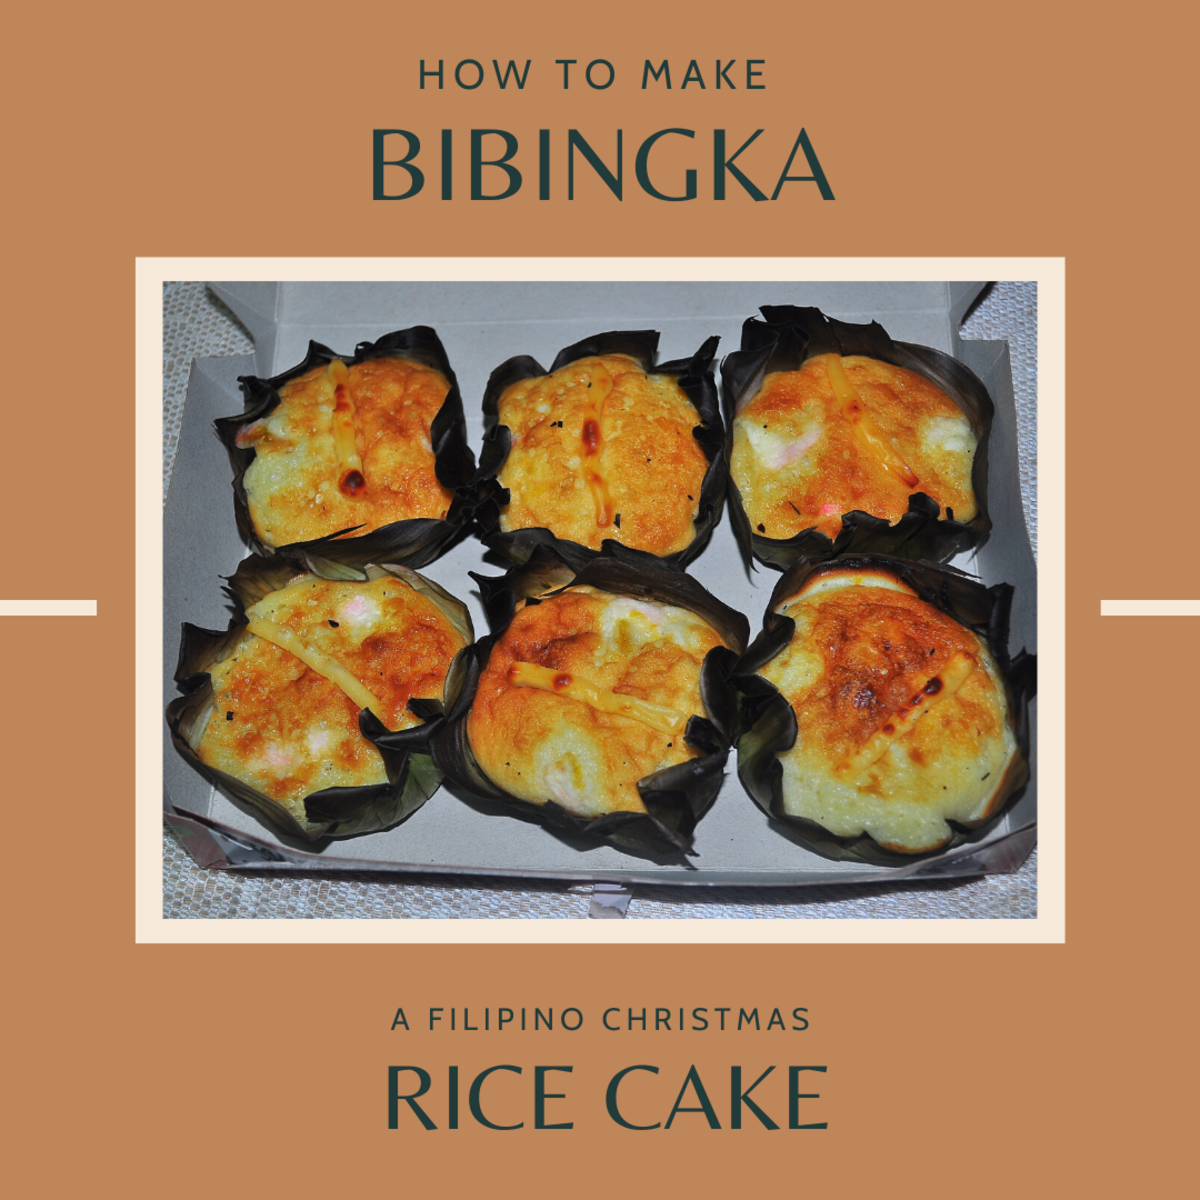 This article will explain what bibingka is, what distinguishes the different types, and how you can make a simple and easy version in your own home.